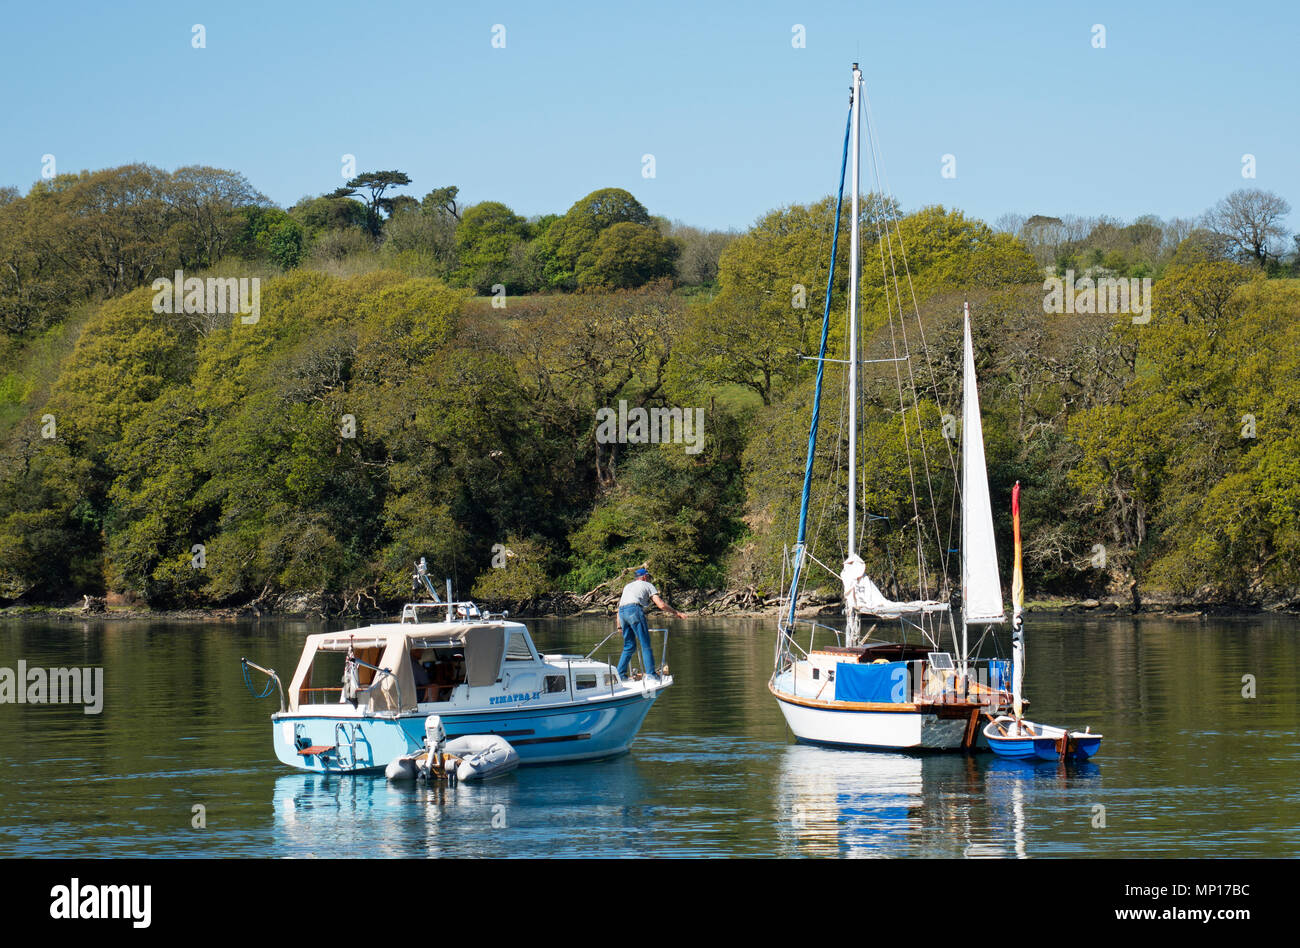 boats in a creek, helford river, cornwall, england, britain, uk, - Stock Image